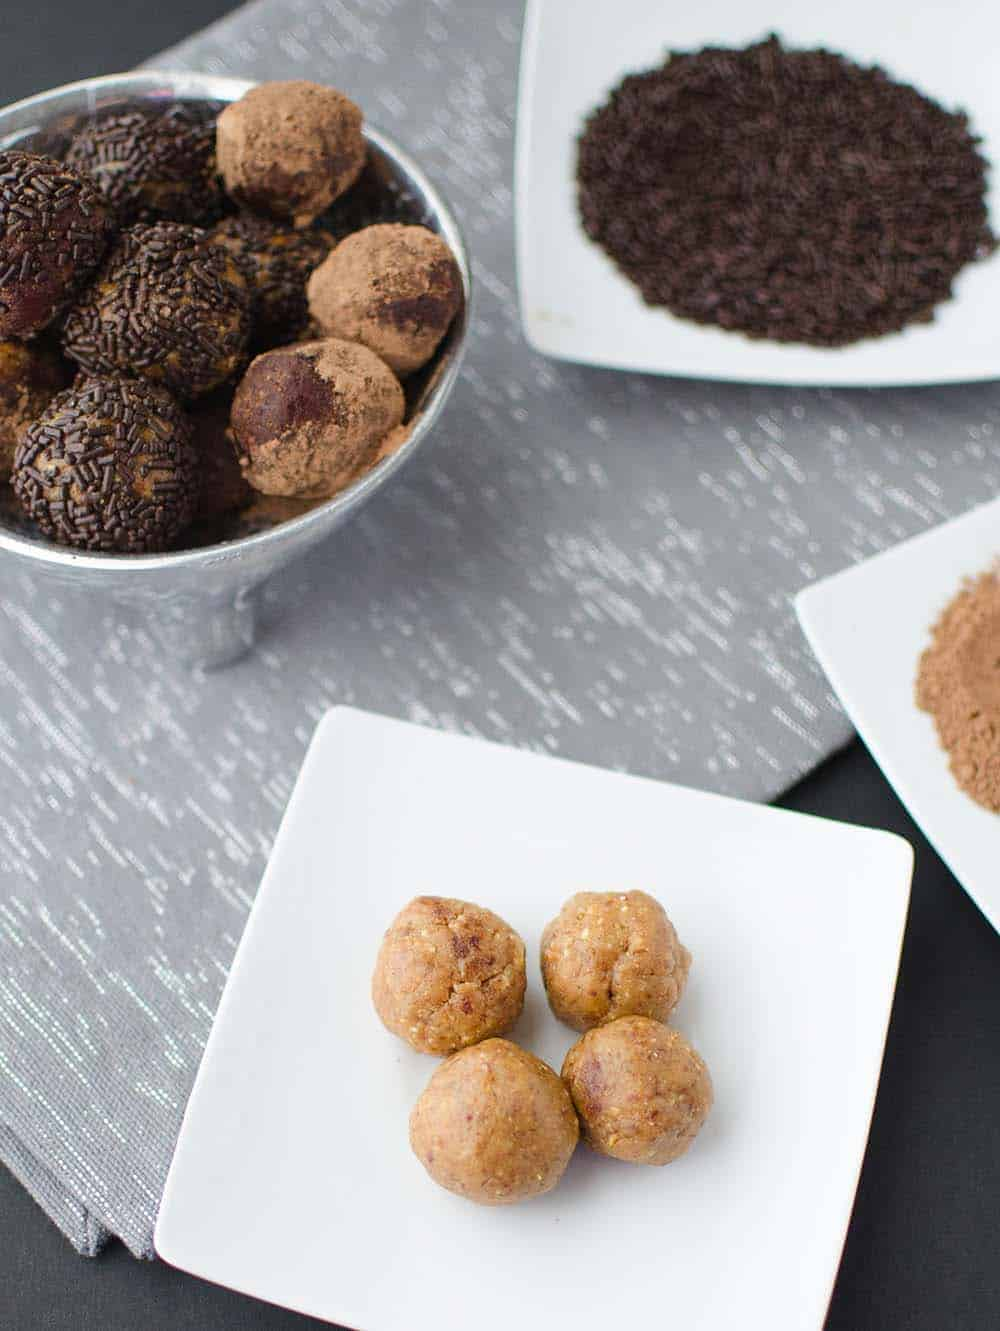 Naturally sweetened chocolate peanut butter truffles! Taste like peanut butter cookie dough but so much healthier and only 4 ingredients. Vegan & gluten-free | www.delishknowledge.com